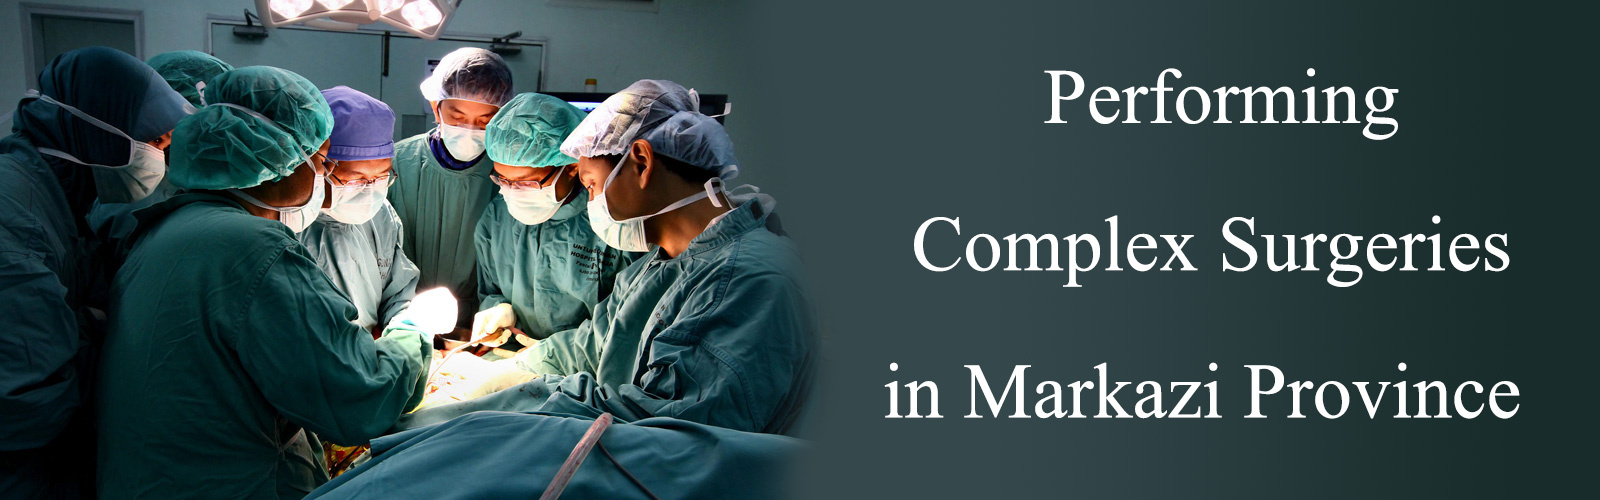 Performing complex surgeries in Markazi province